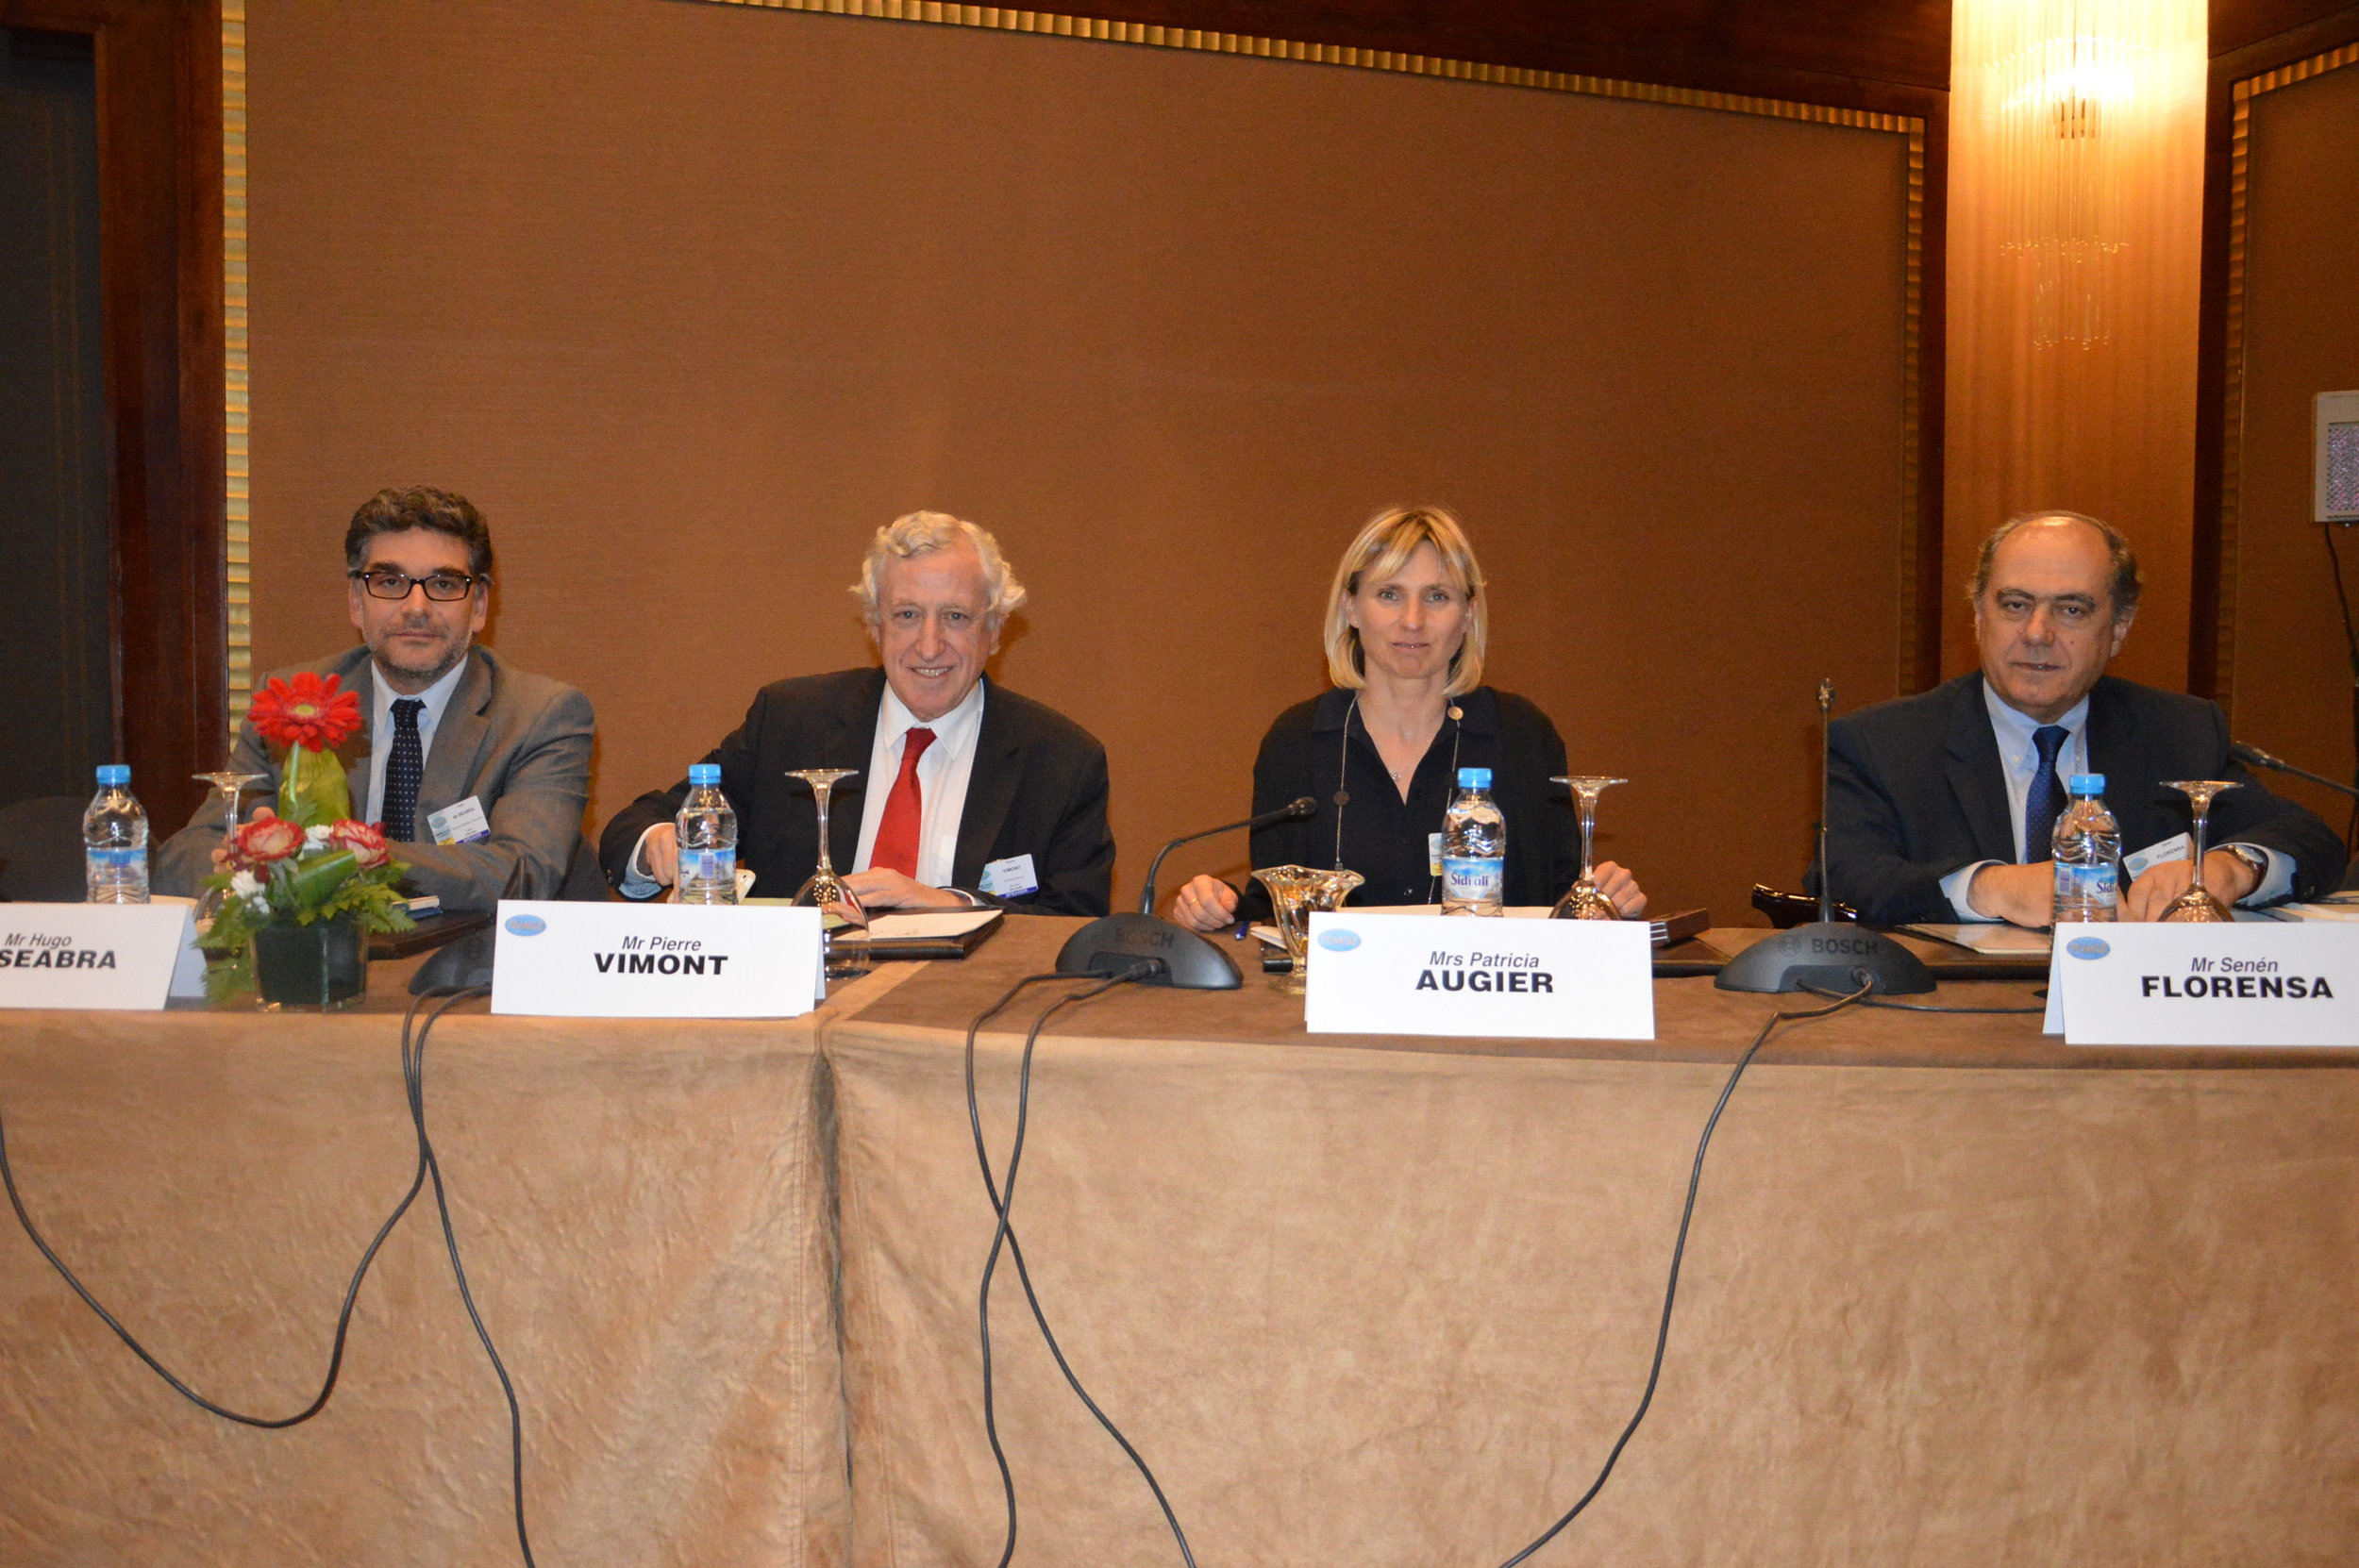 Speakers at FEMISE Annual Conference. 29-30 April 2017, Casablanca. Copyright: FEMISE